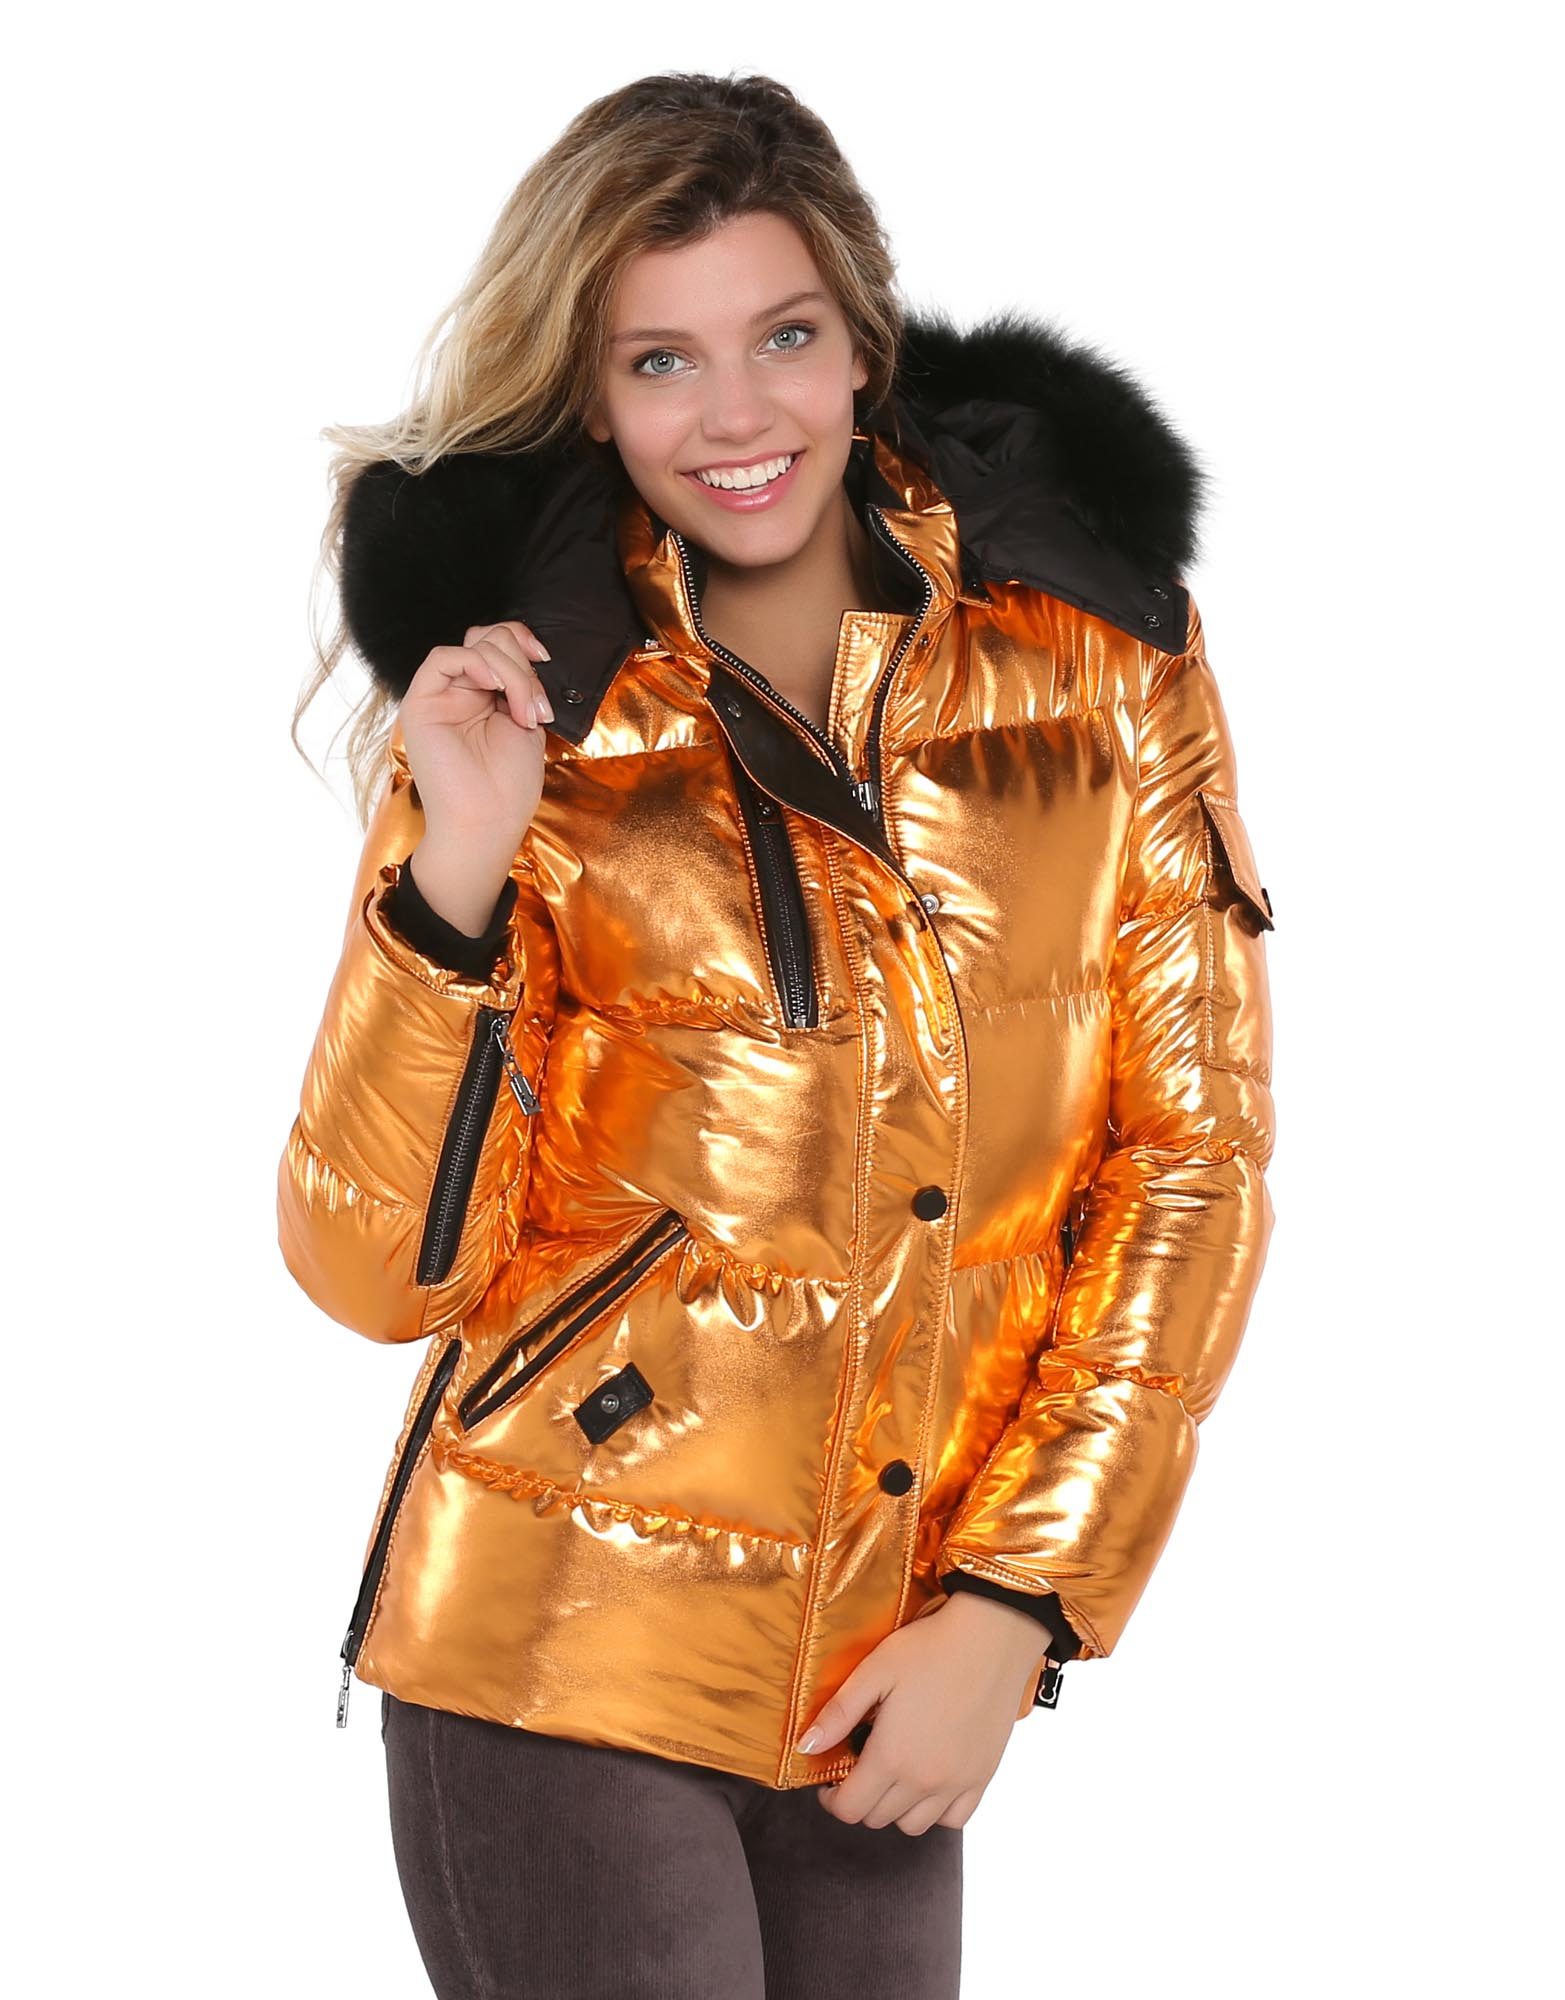 Metalic Orange Puffer Woman Jacket With Real Fur - S'ELITE ...